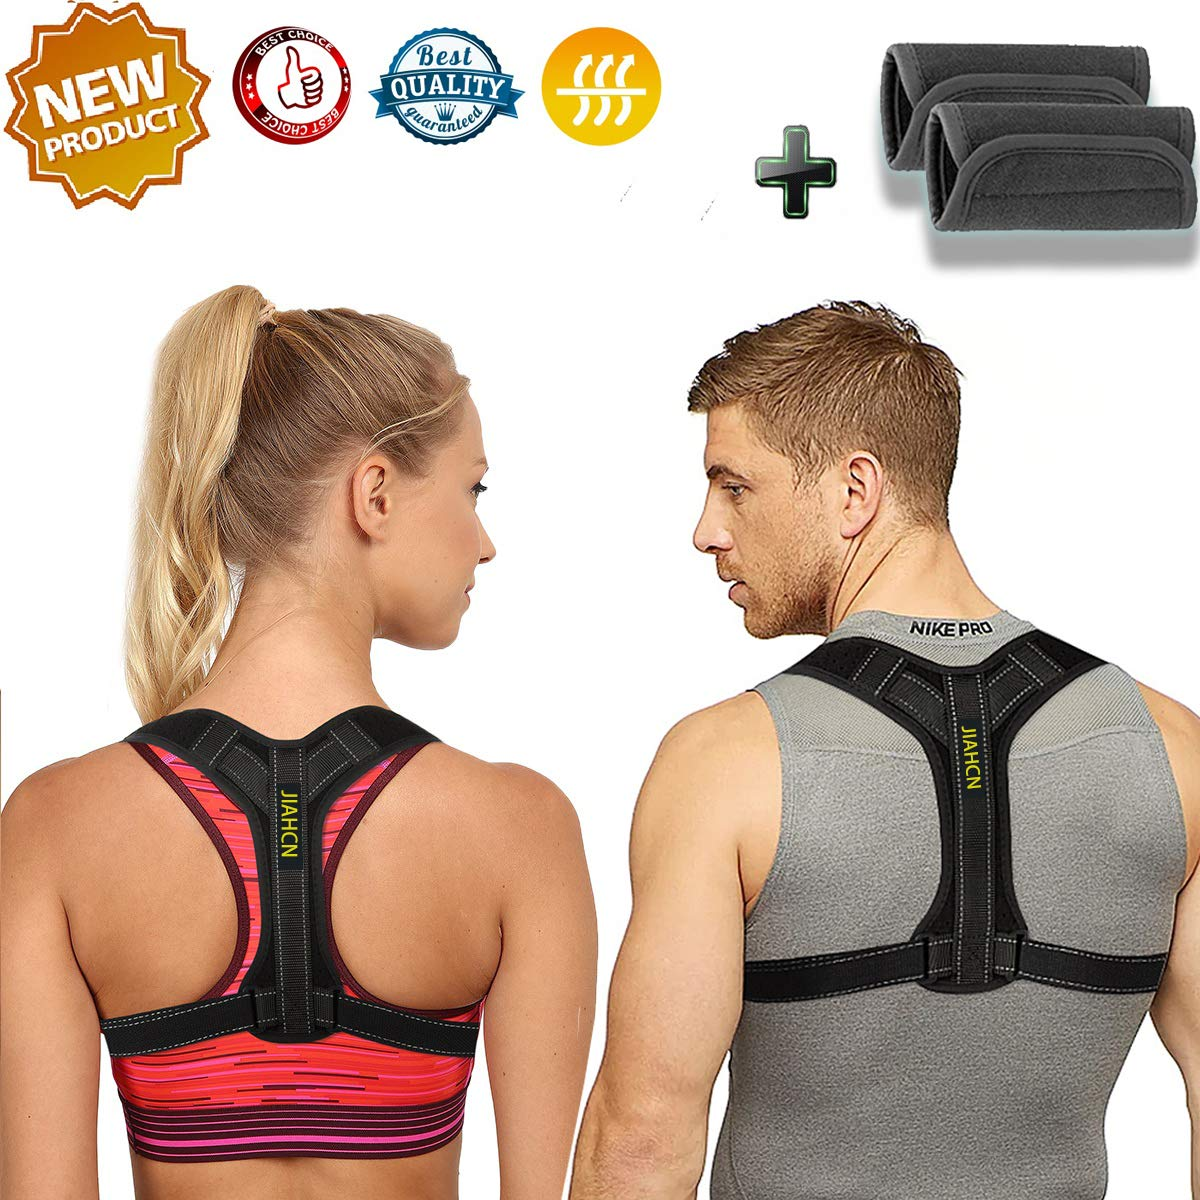 Adjustable Posture Corrector for Women&Men and Kids, Effective and Comfortable Posture Brace for Slouching and Hunching, Upper Back Bracer with Detachable Pads to Relieve Back Pain (28-41'') (Black)